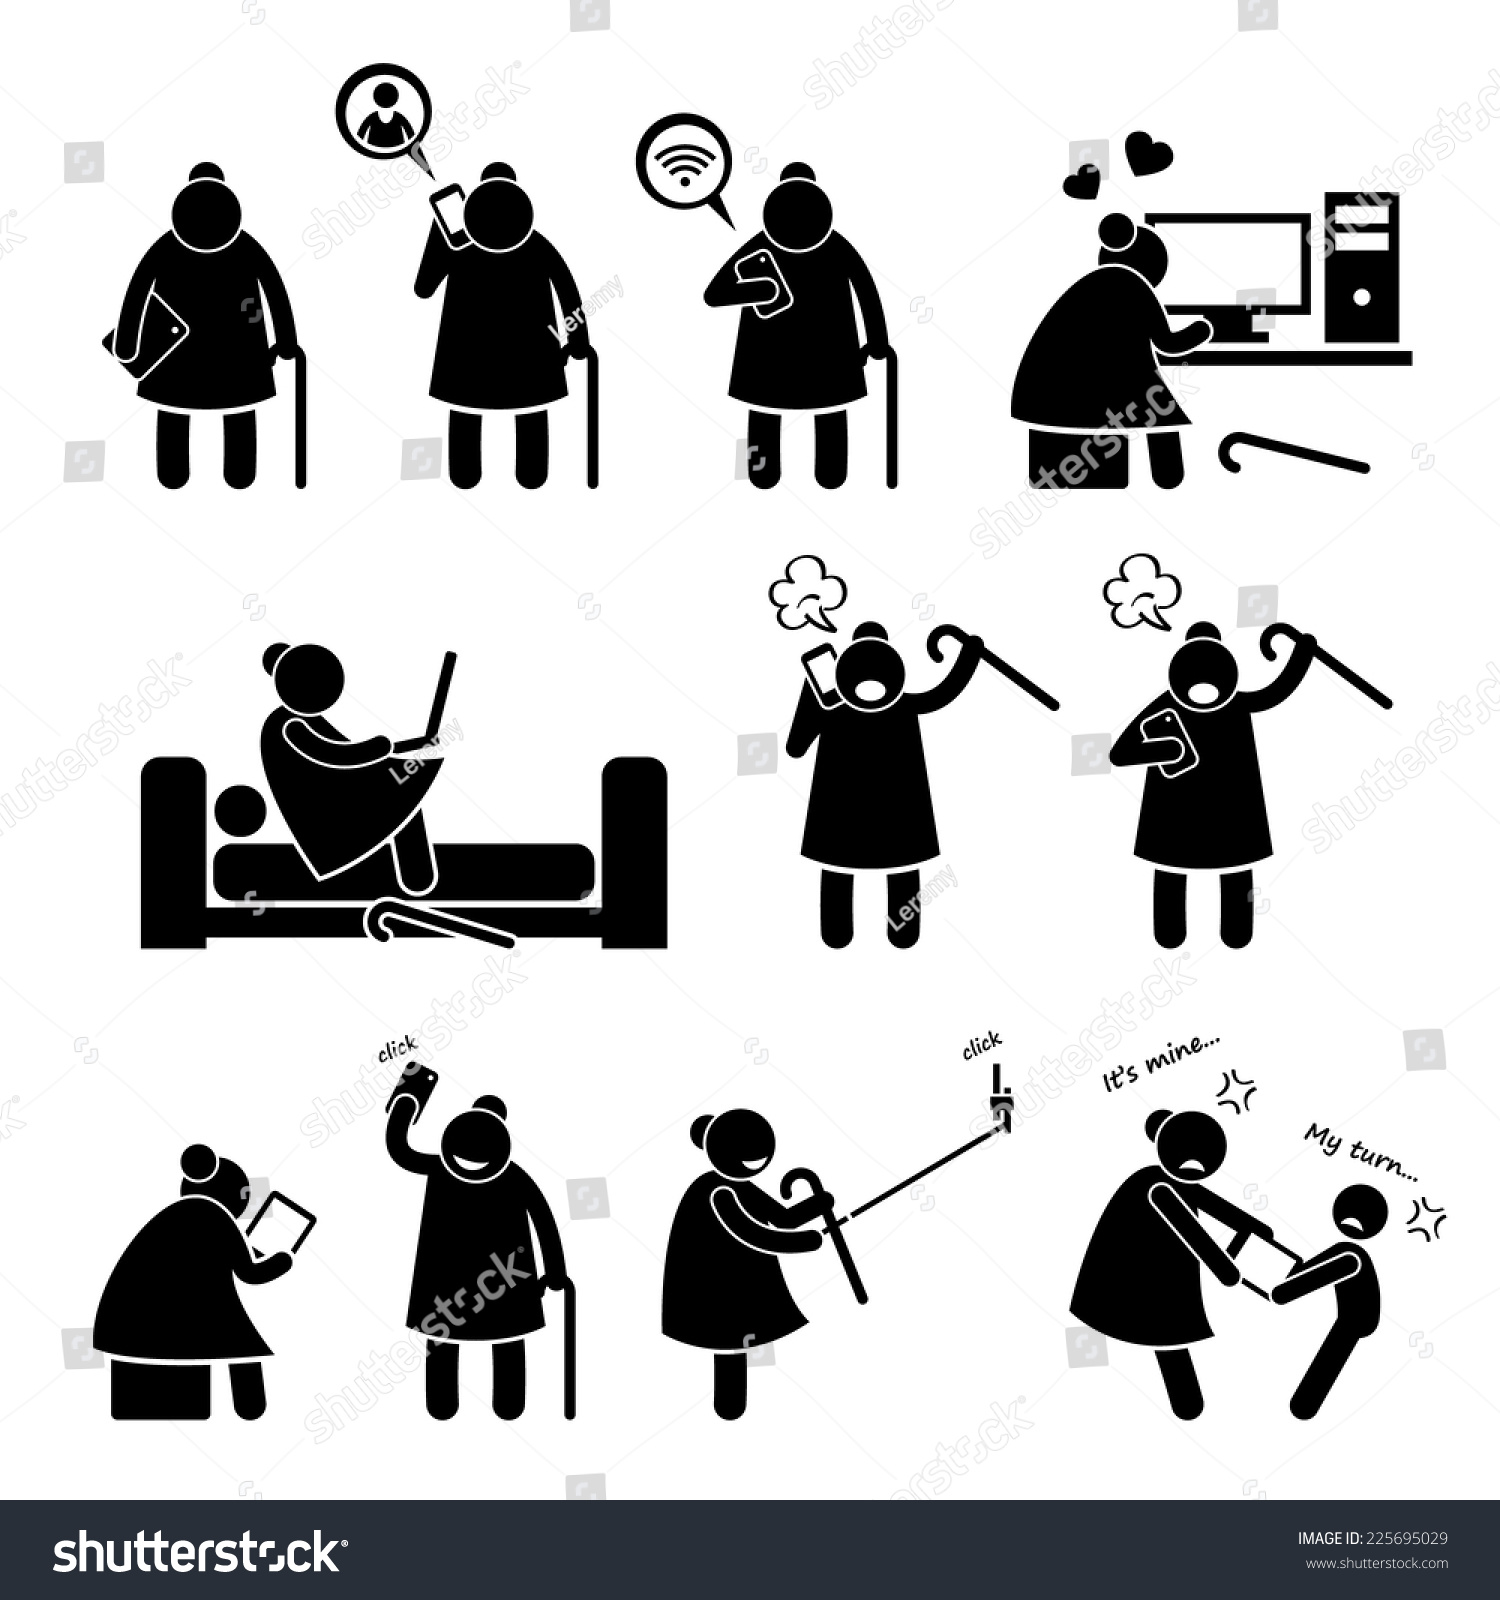 153896512237094234 furthermore 5 additionally Colorful together with Man and woman on motorcycle clipart additionally How To Do The Floating Stick Figure Trick. on stick figure pictures